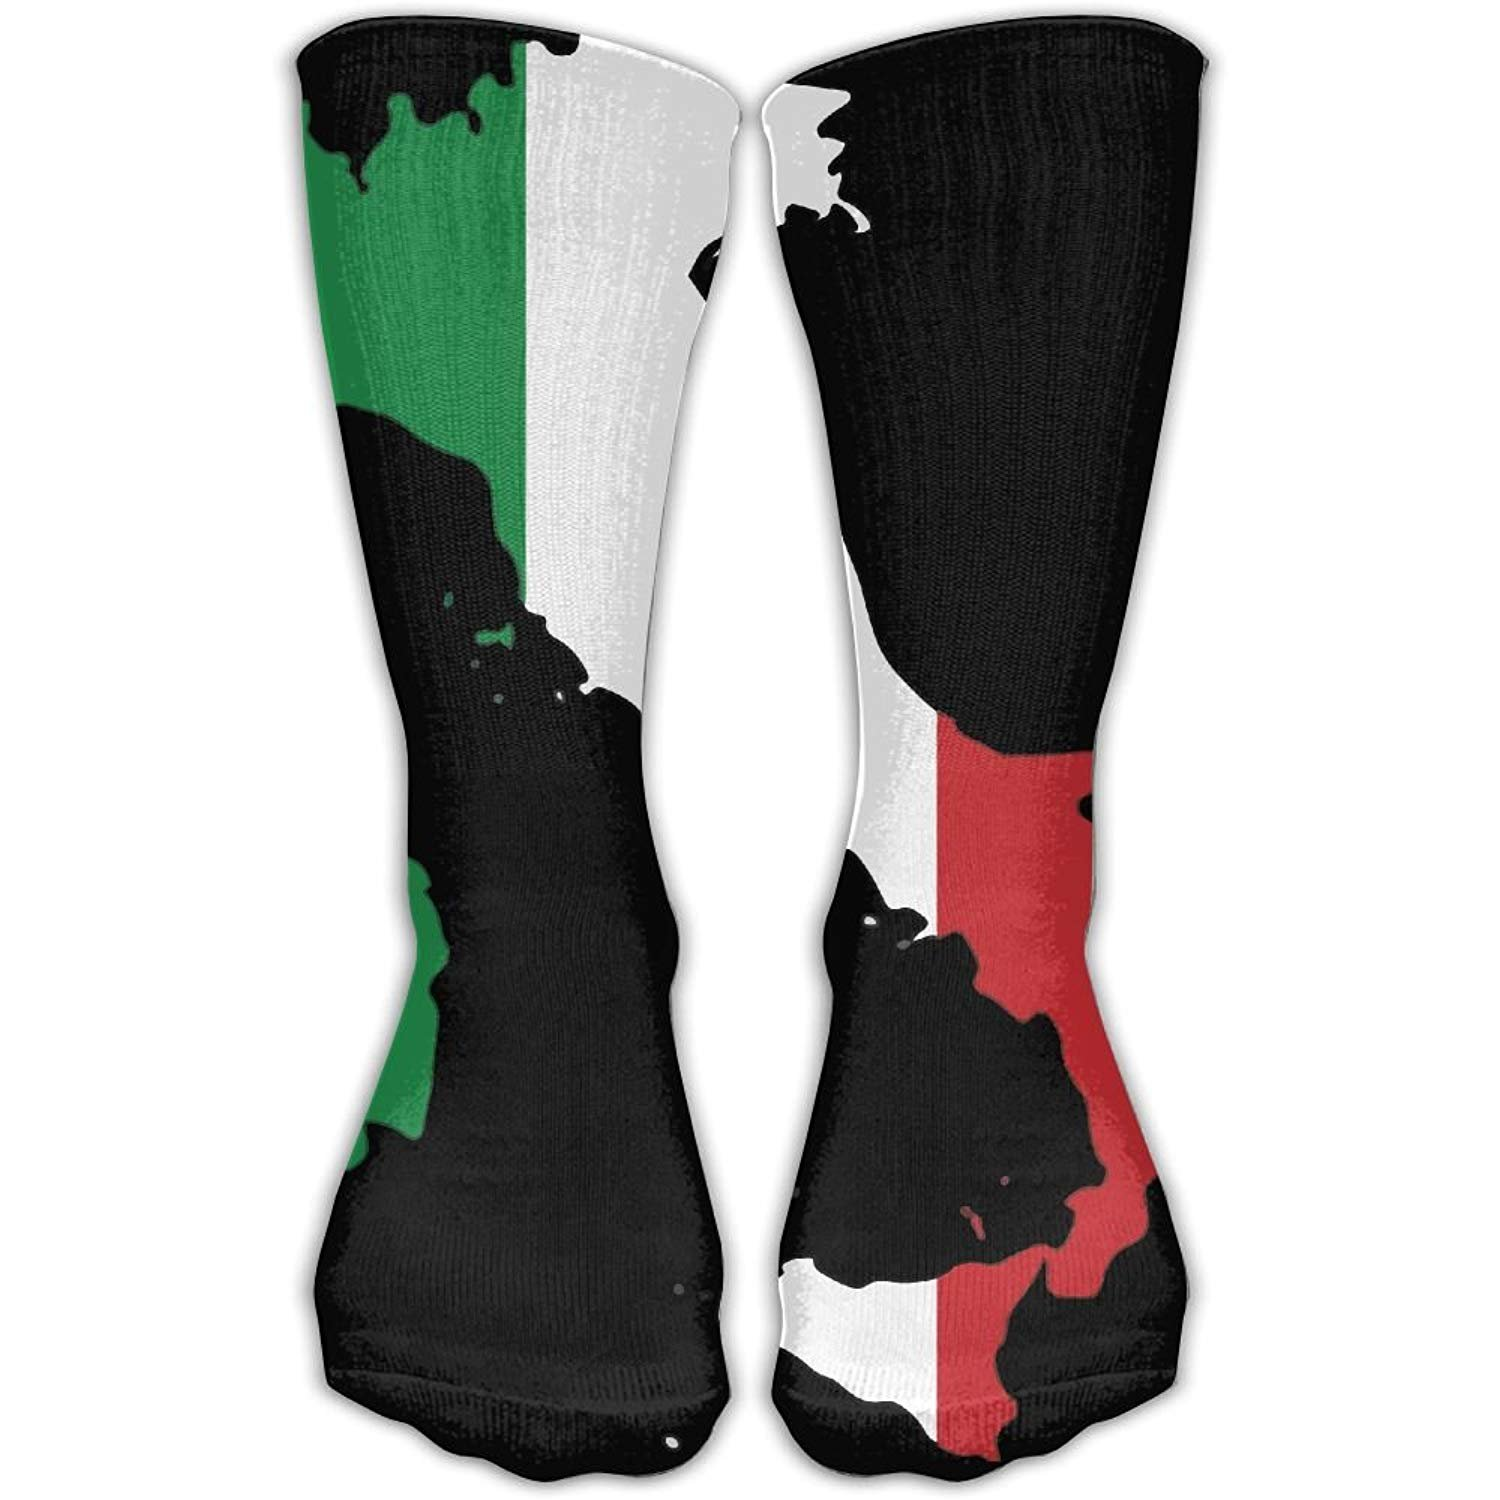 Italy Flag Map Unisex Novelty Crew Socks Ankle Dress Socks Fits Shoe Size 6-10